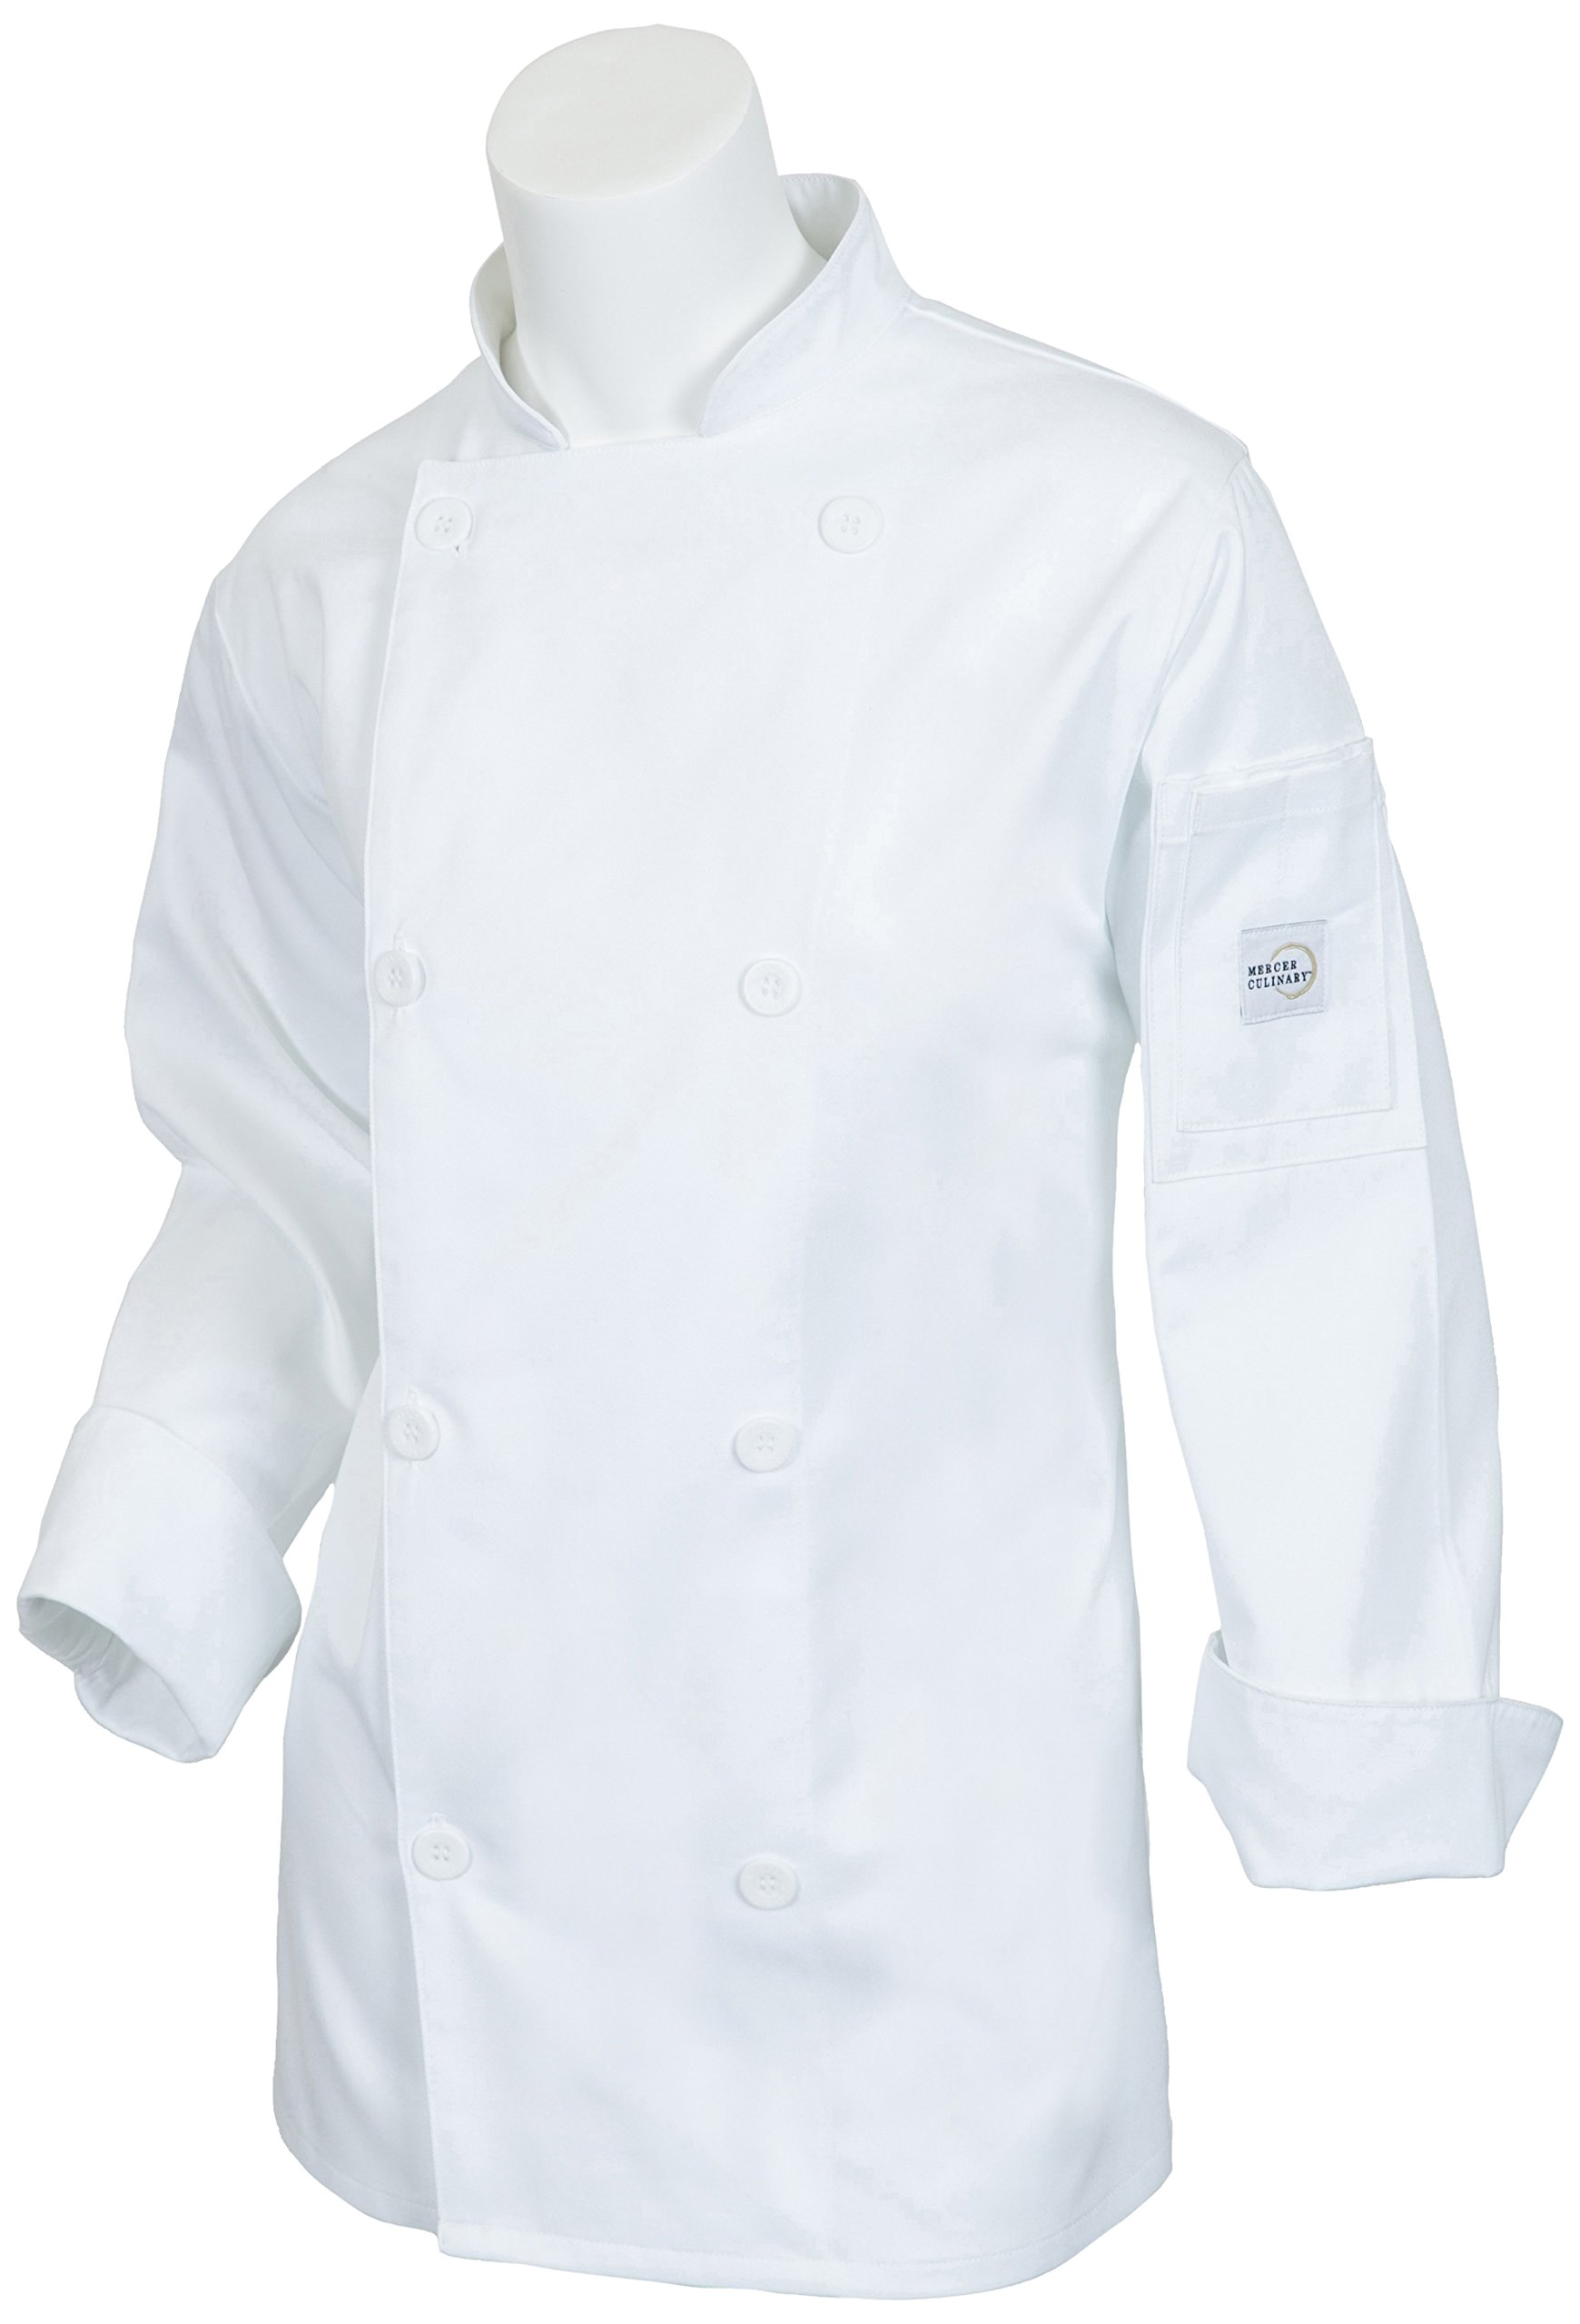 Mercer Culinary M61030WHXS Genesis Women's Jacket with Traditional Buttons, X-Small, White by Mercer Culinary